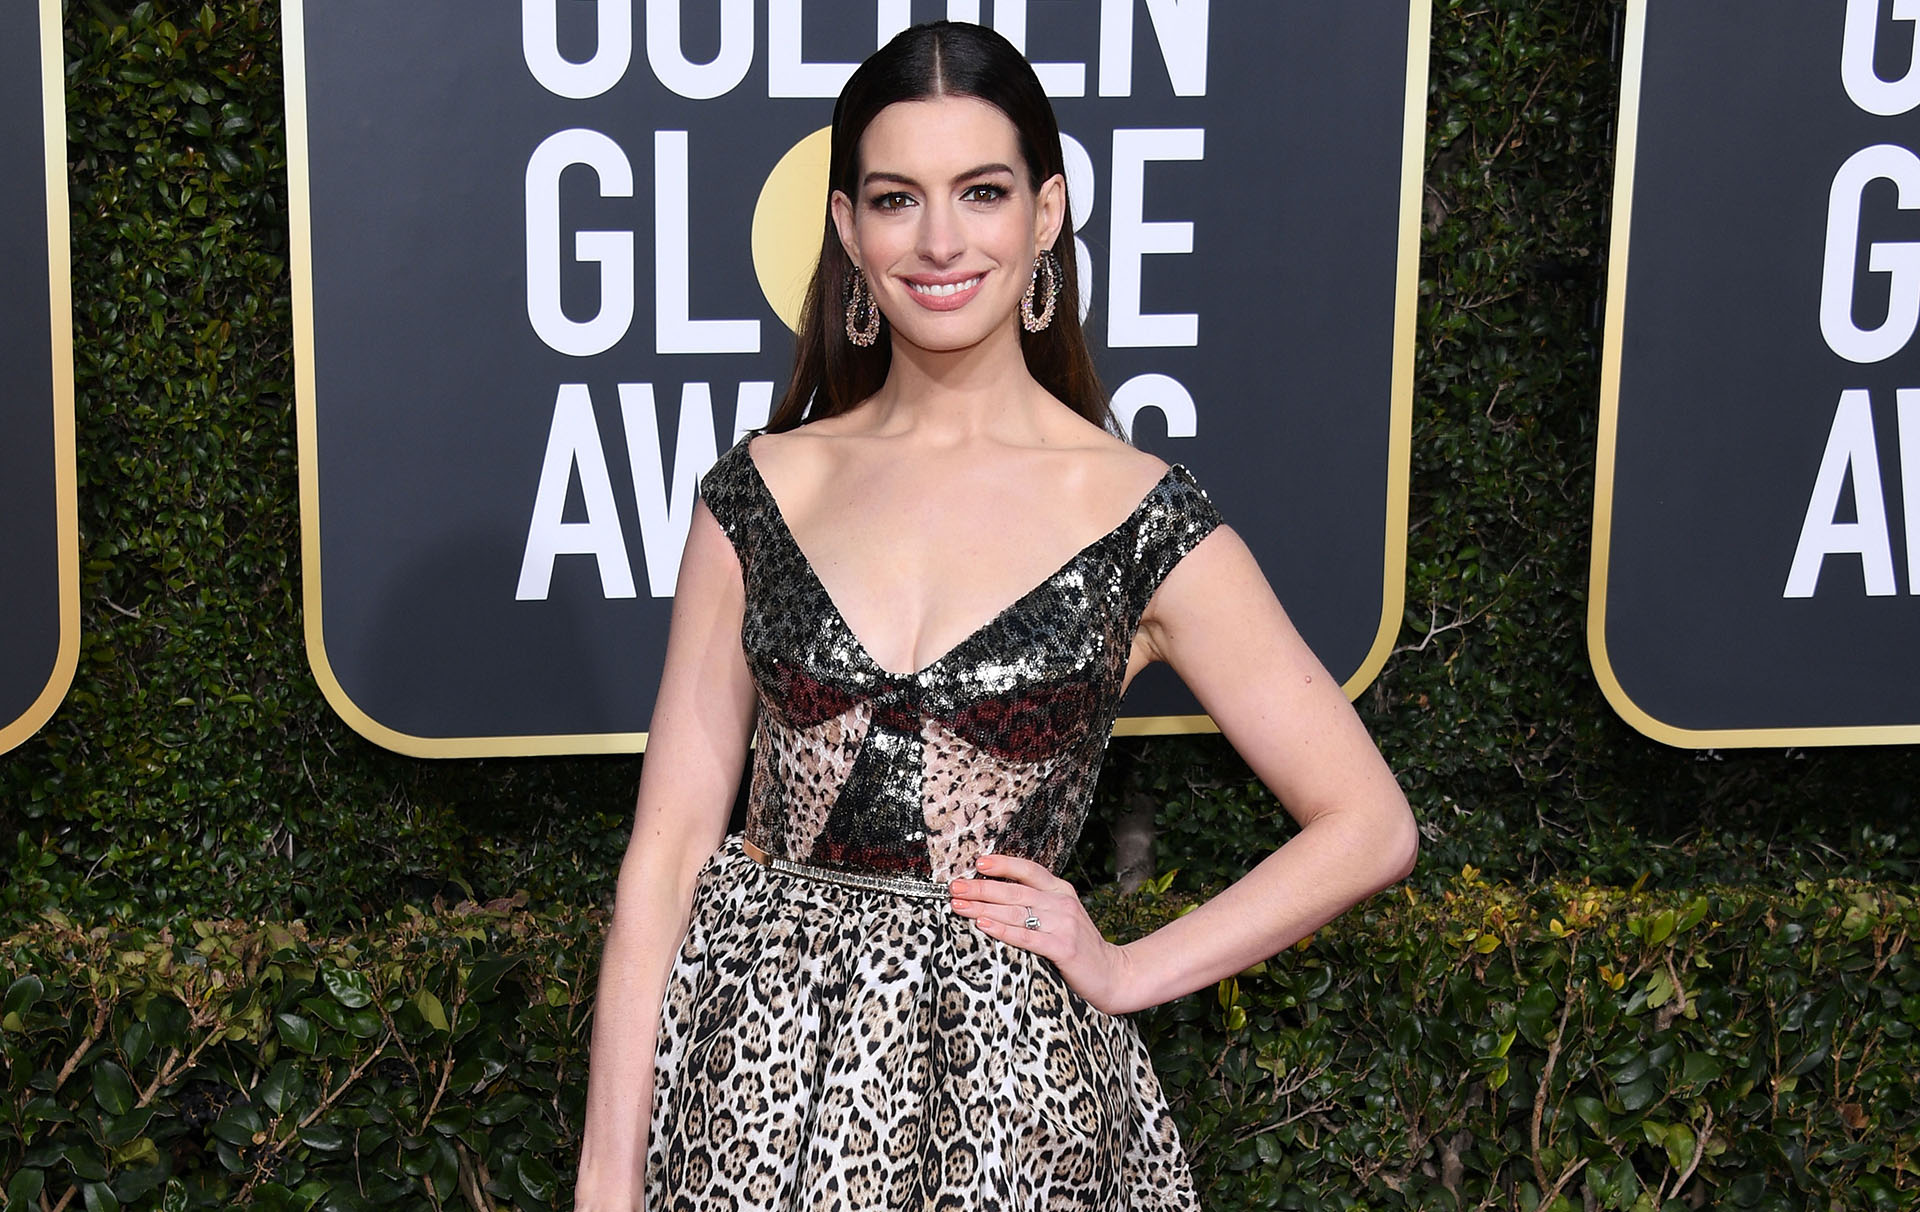 Anna Hathaway quits drinking